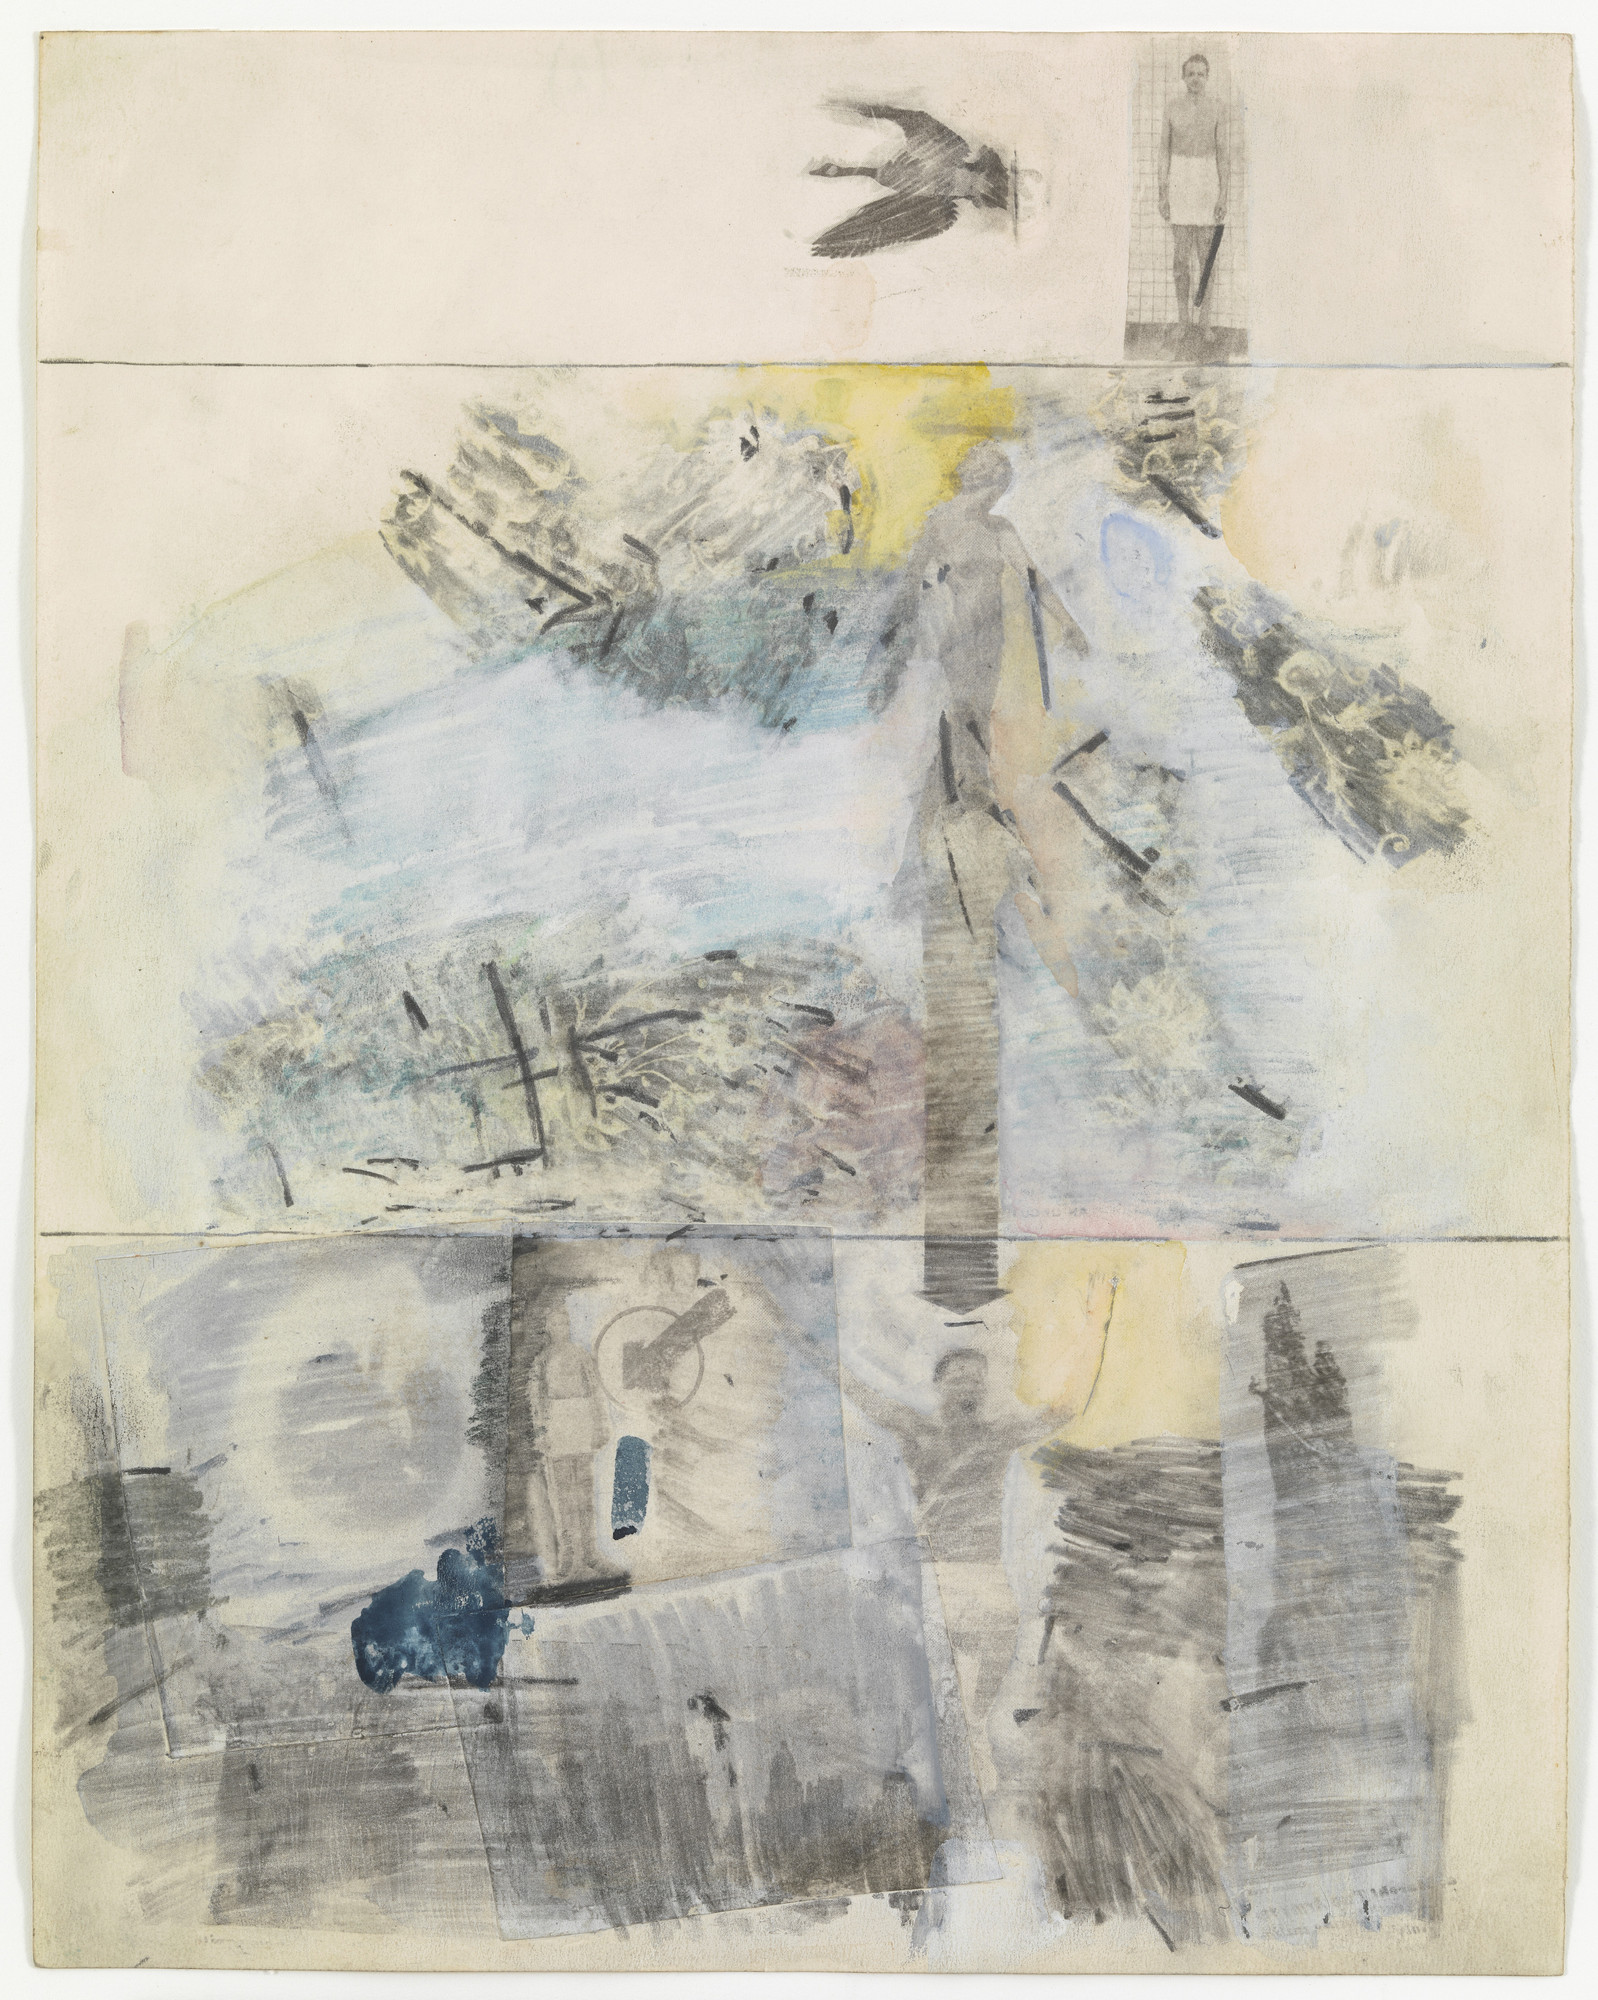 Robert Rauschenberg. Canto II: The Descent from the series Thirty-Four Illustrations for Dante's Inferno. (1958)